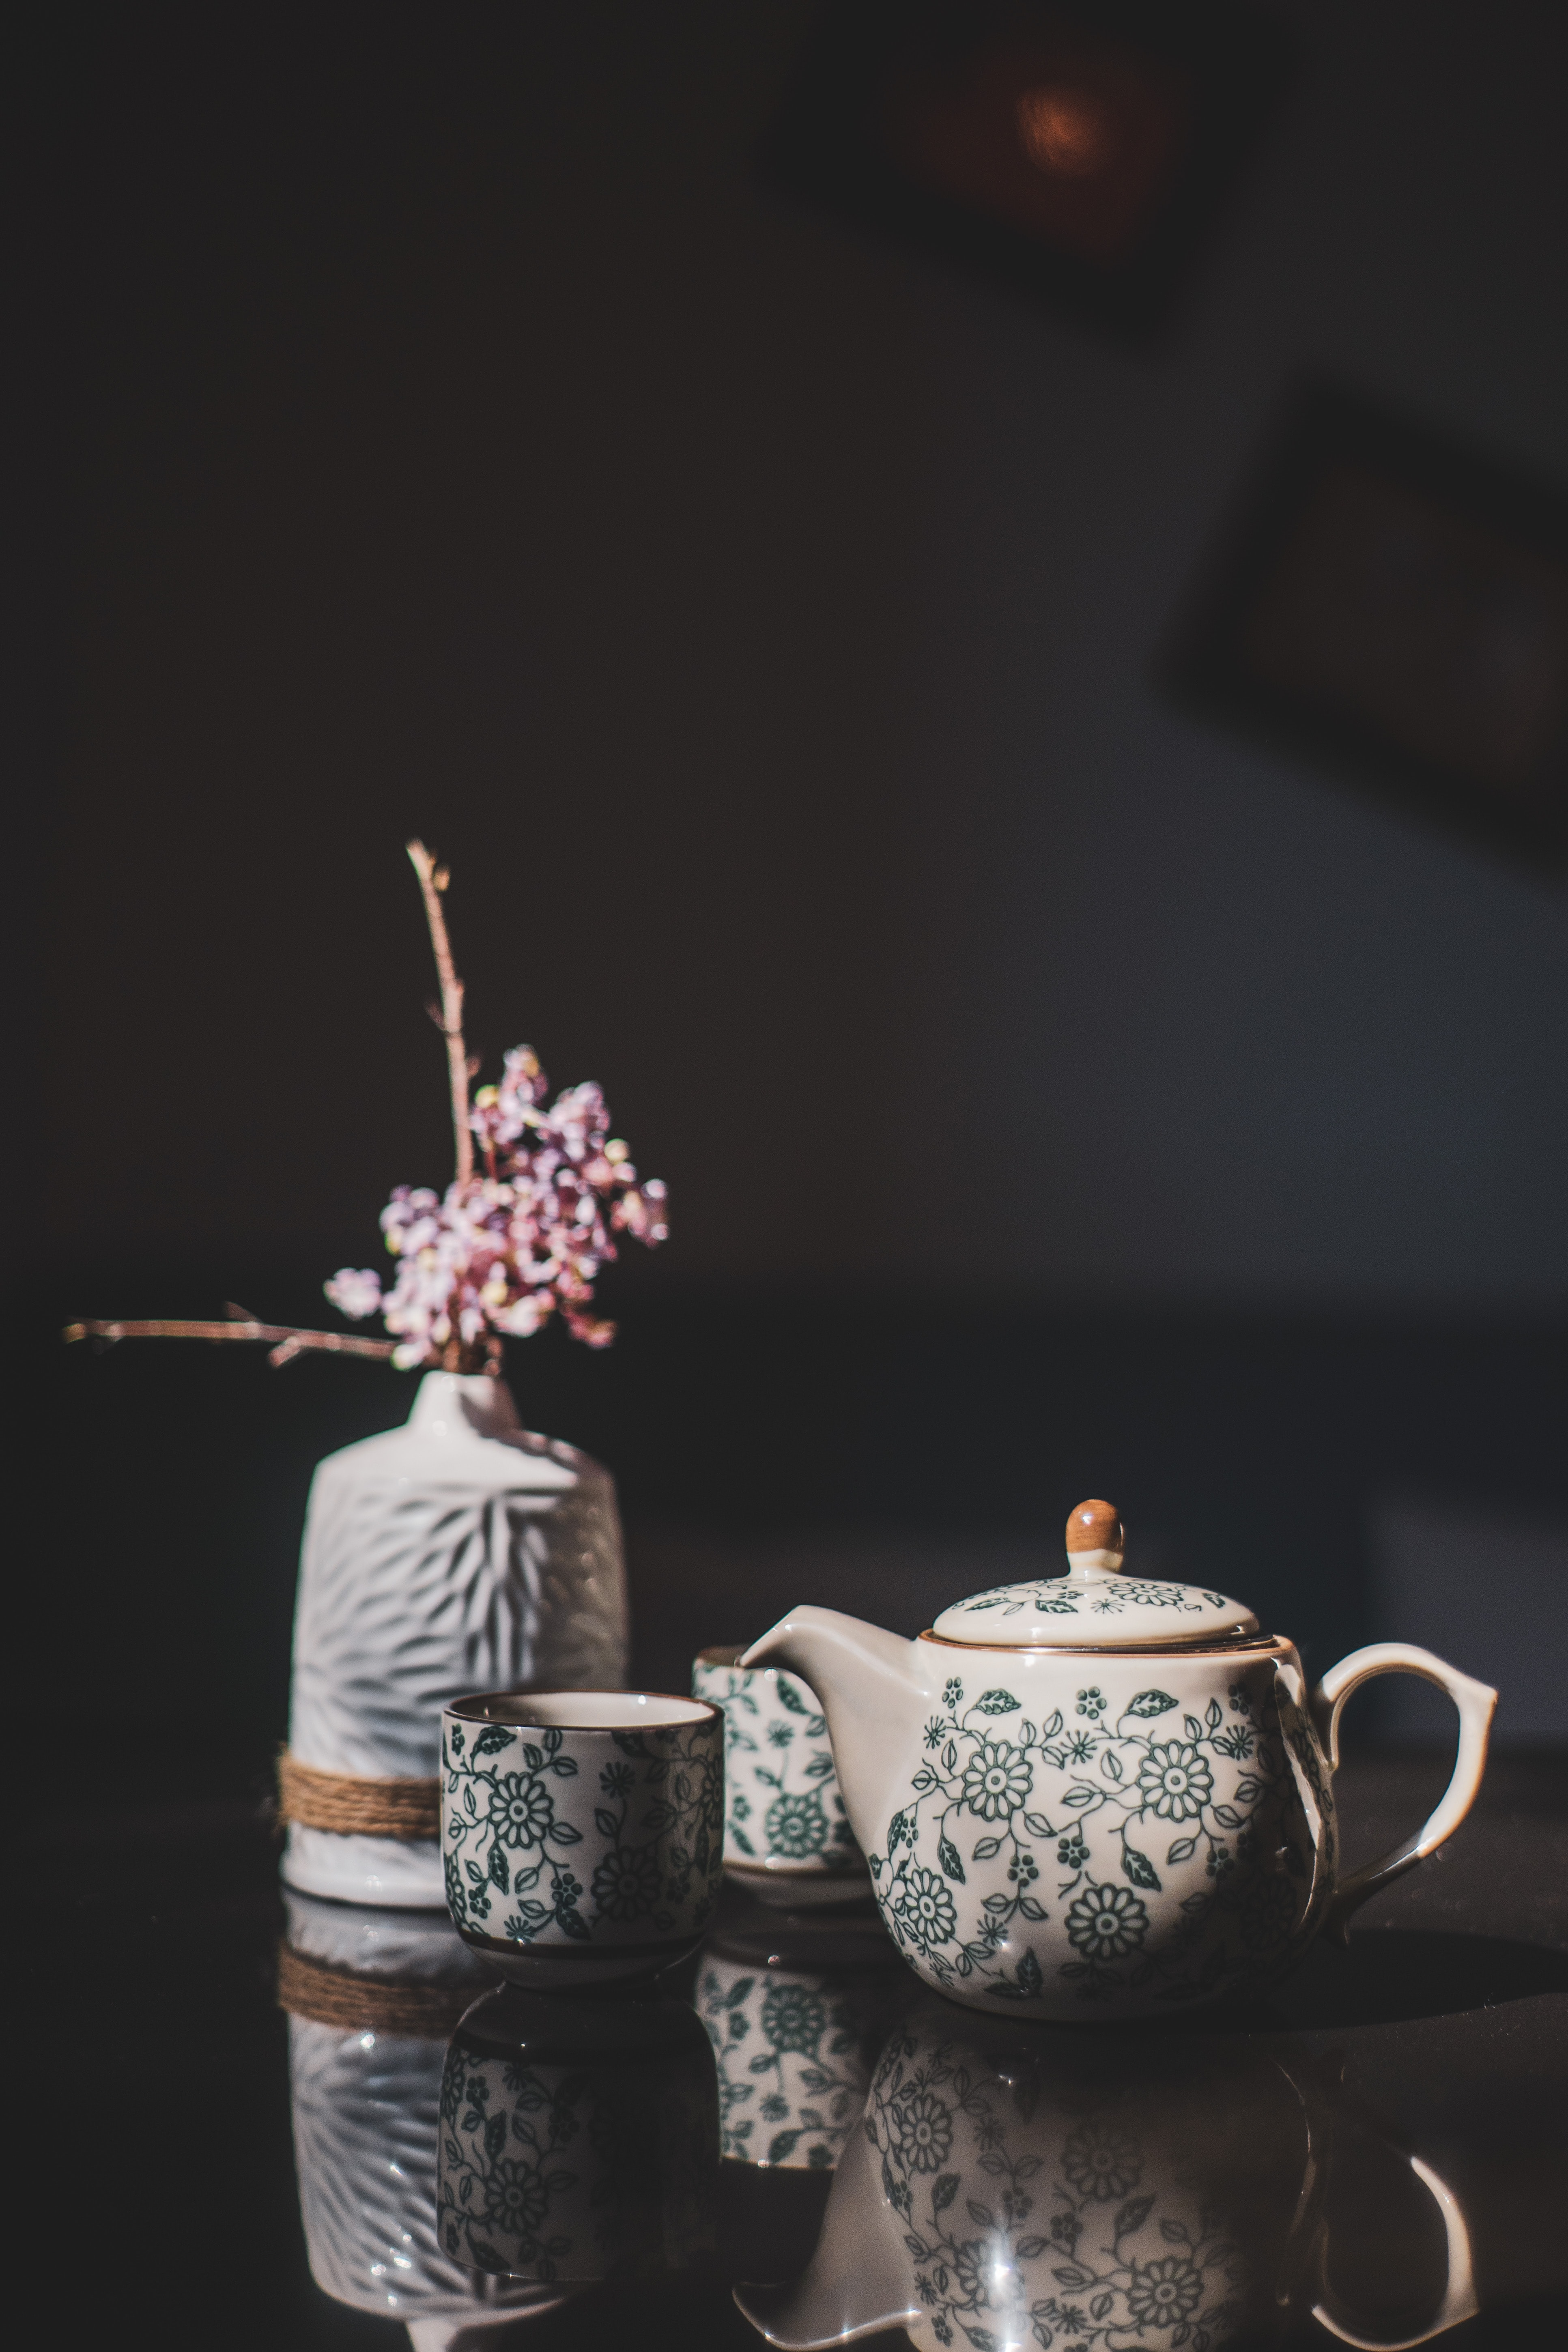 70354 download wallpaper Flowers, Cups, Miscellanea, Miscellaneous, Vase, Decor, Teapot, Kettle screensavers and pictures for free